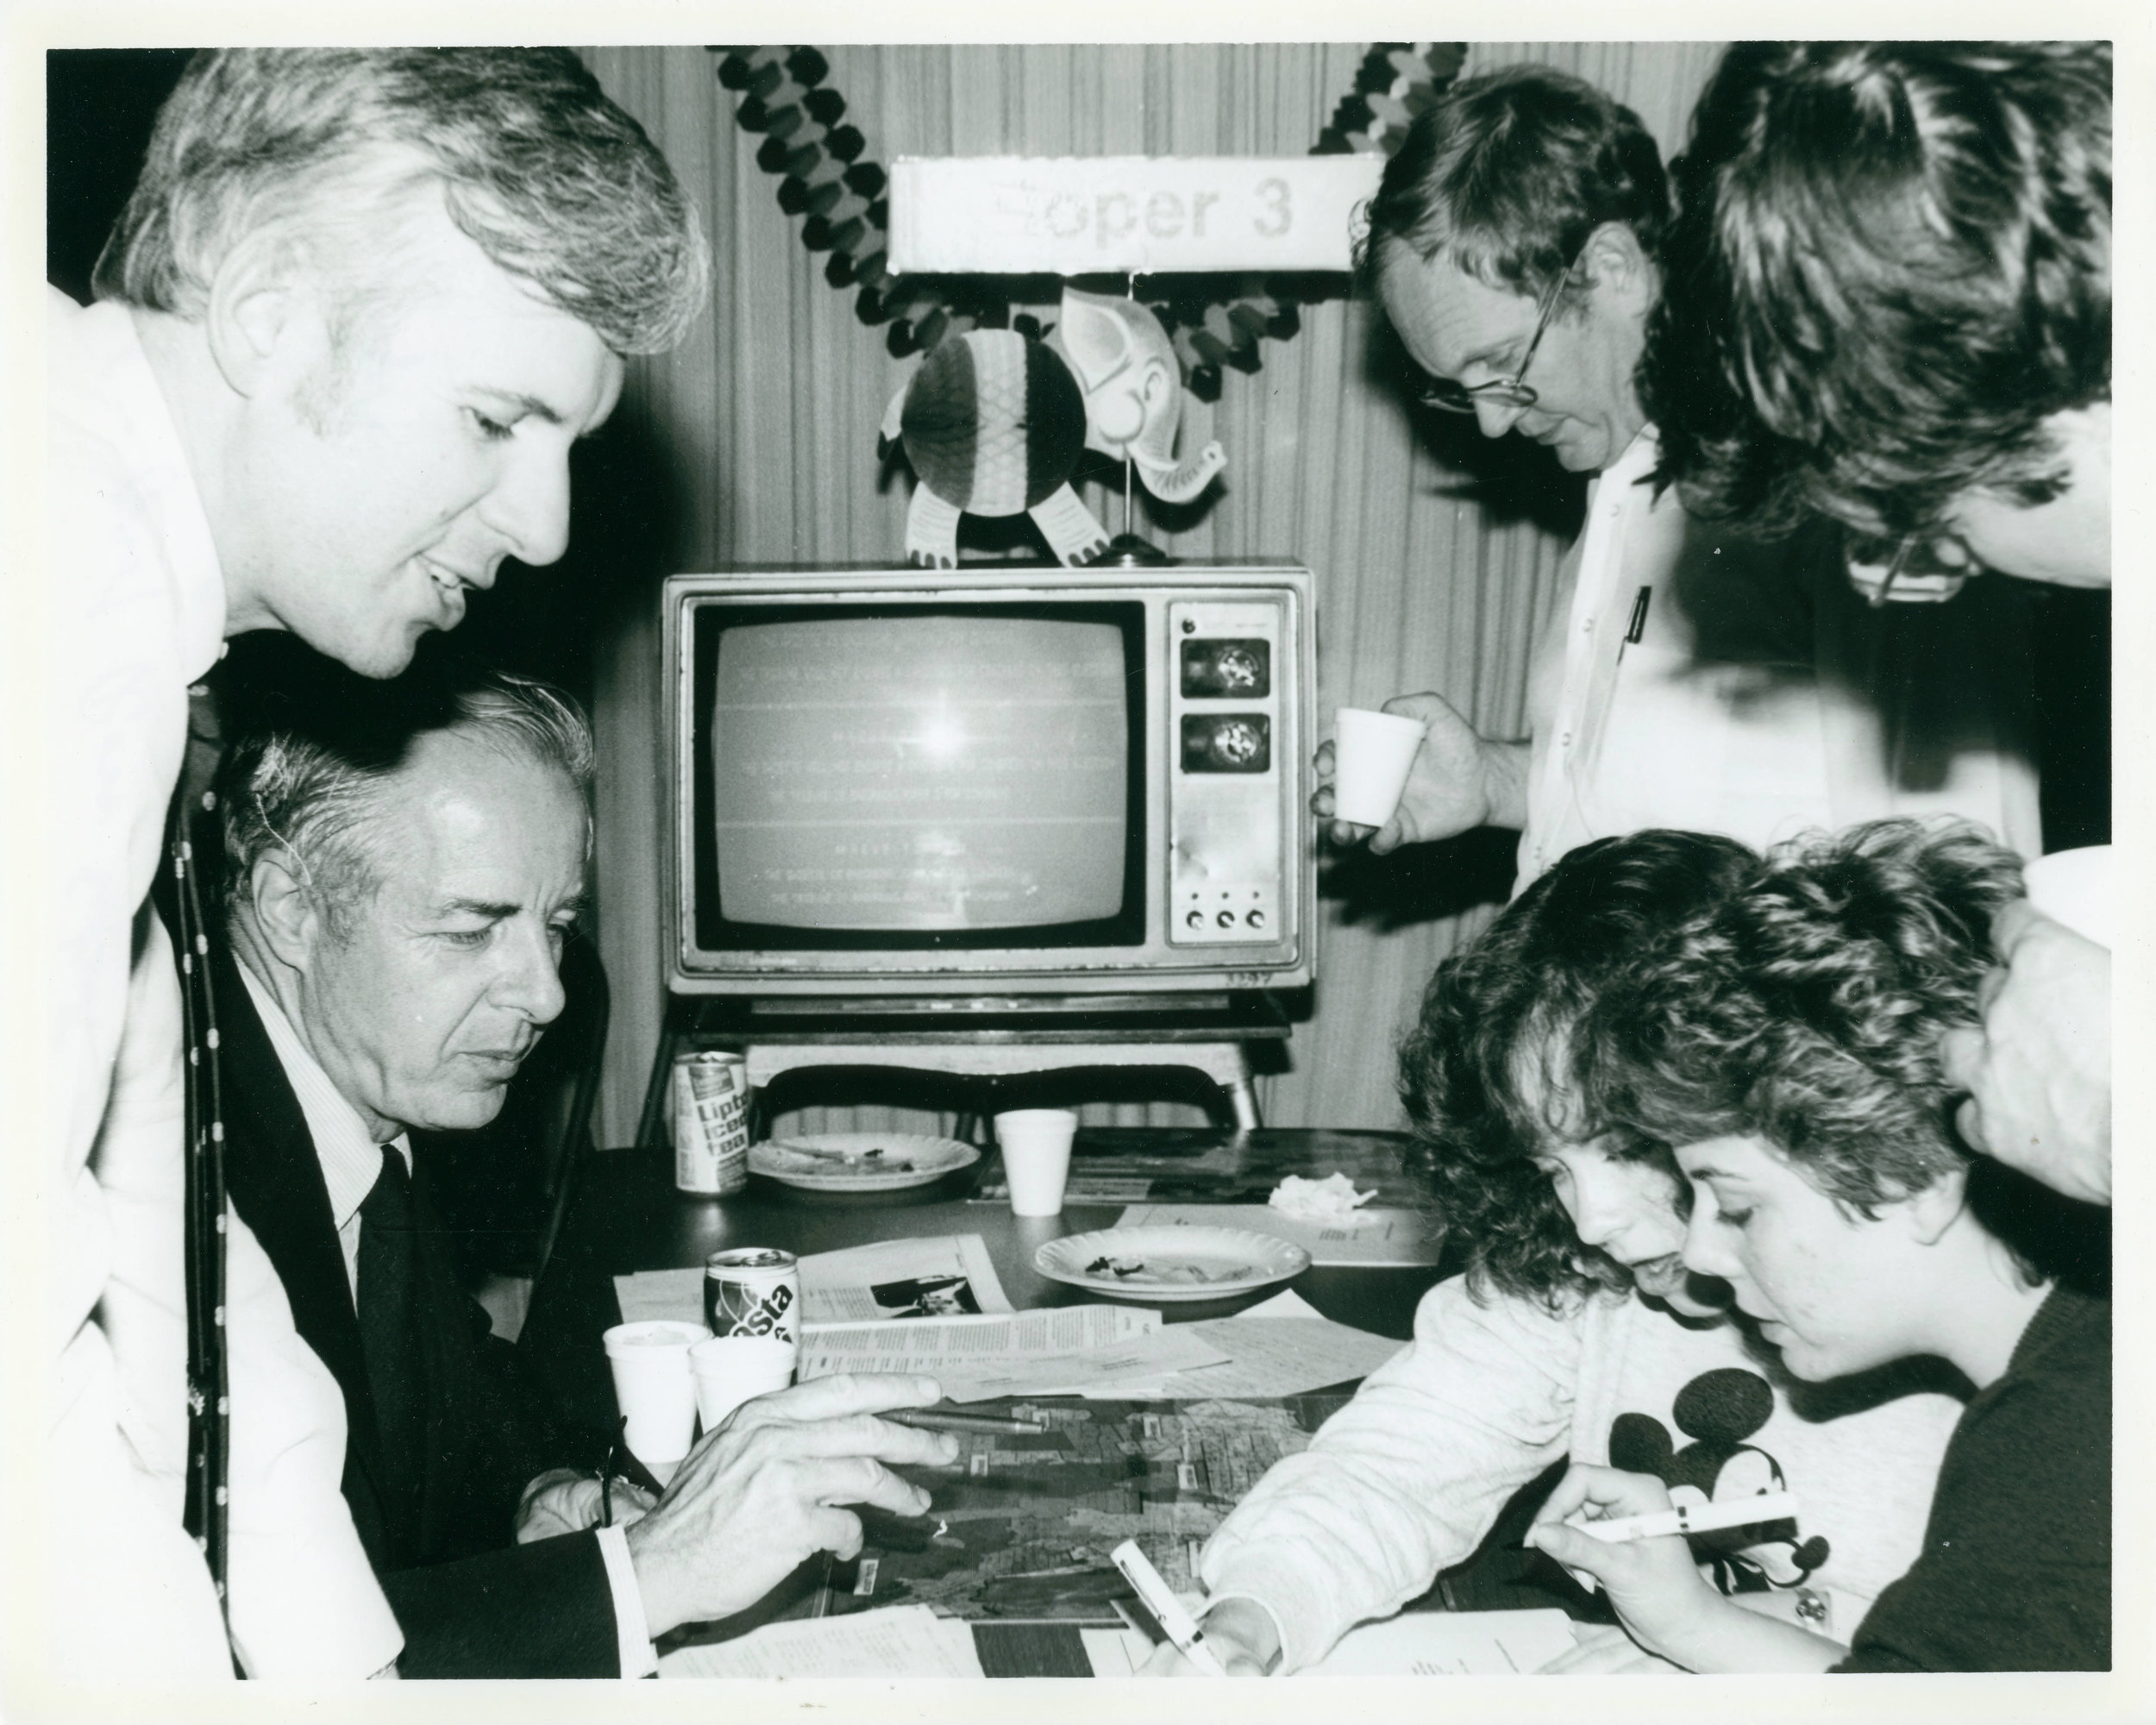 Professor Ross Eckert (left) and other faculty and students go over documents. Image credit: Claremont Colleges Photo Archive